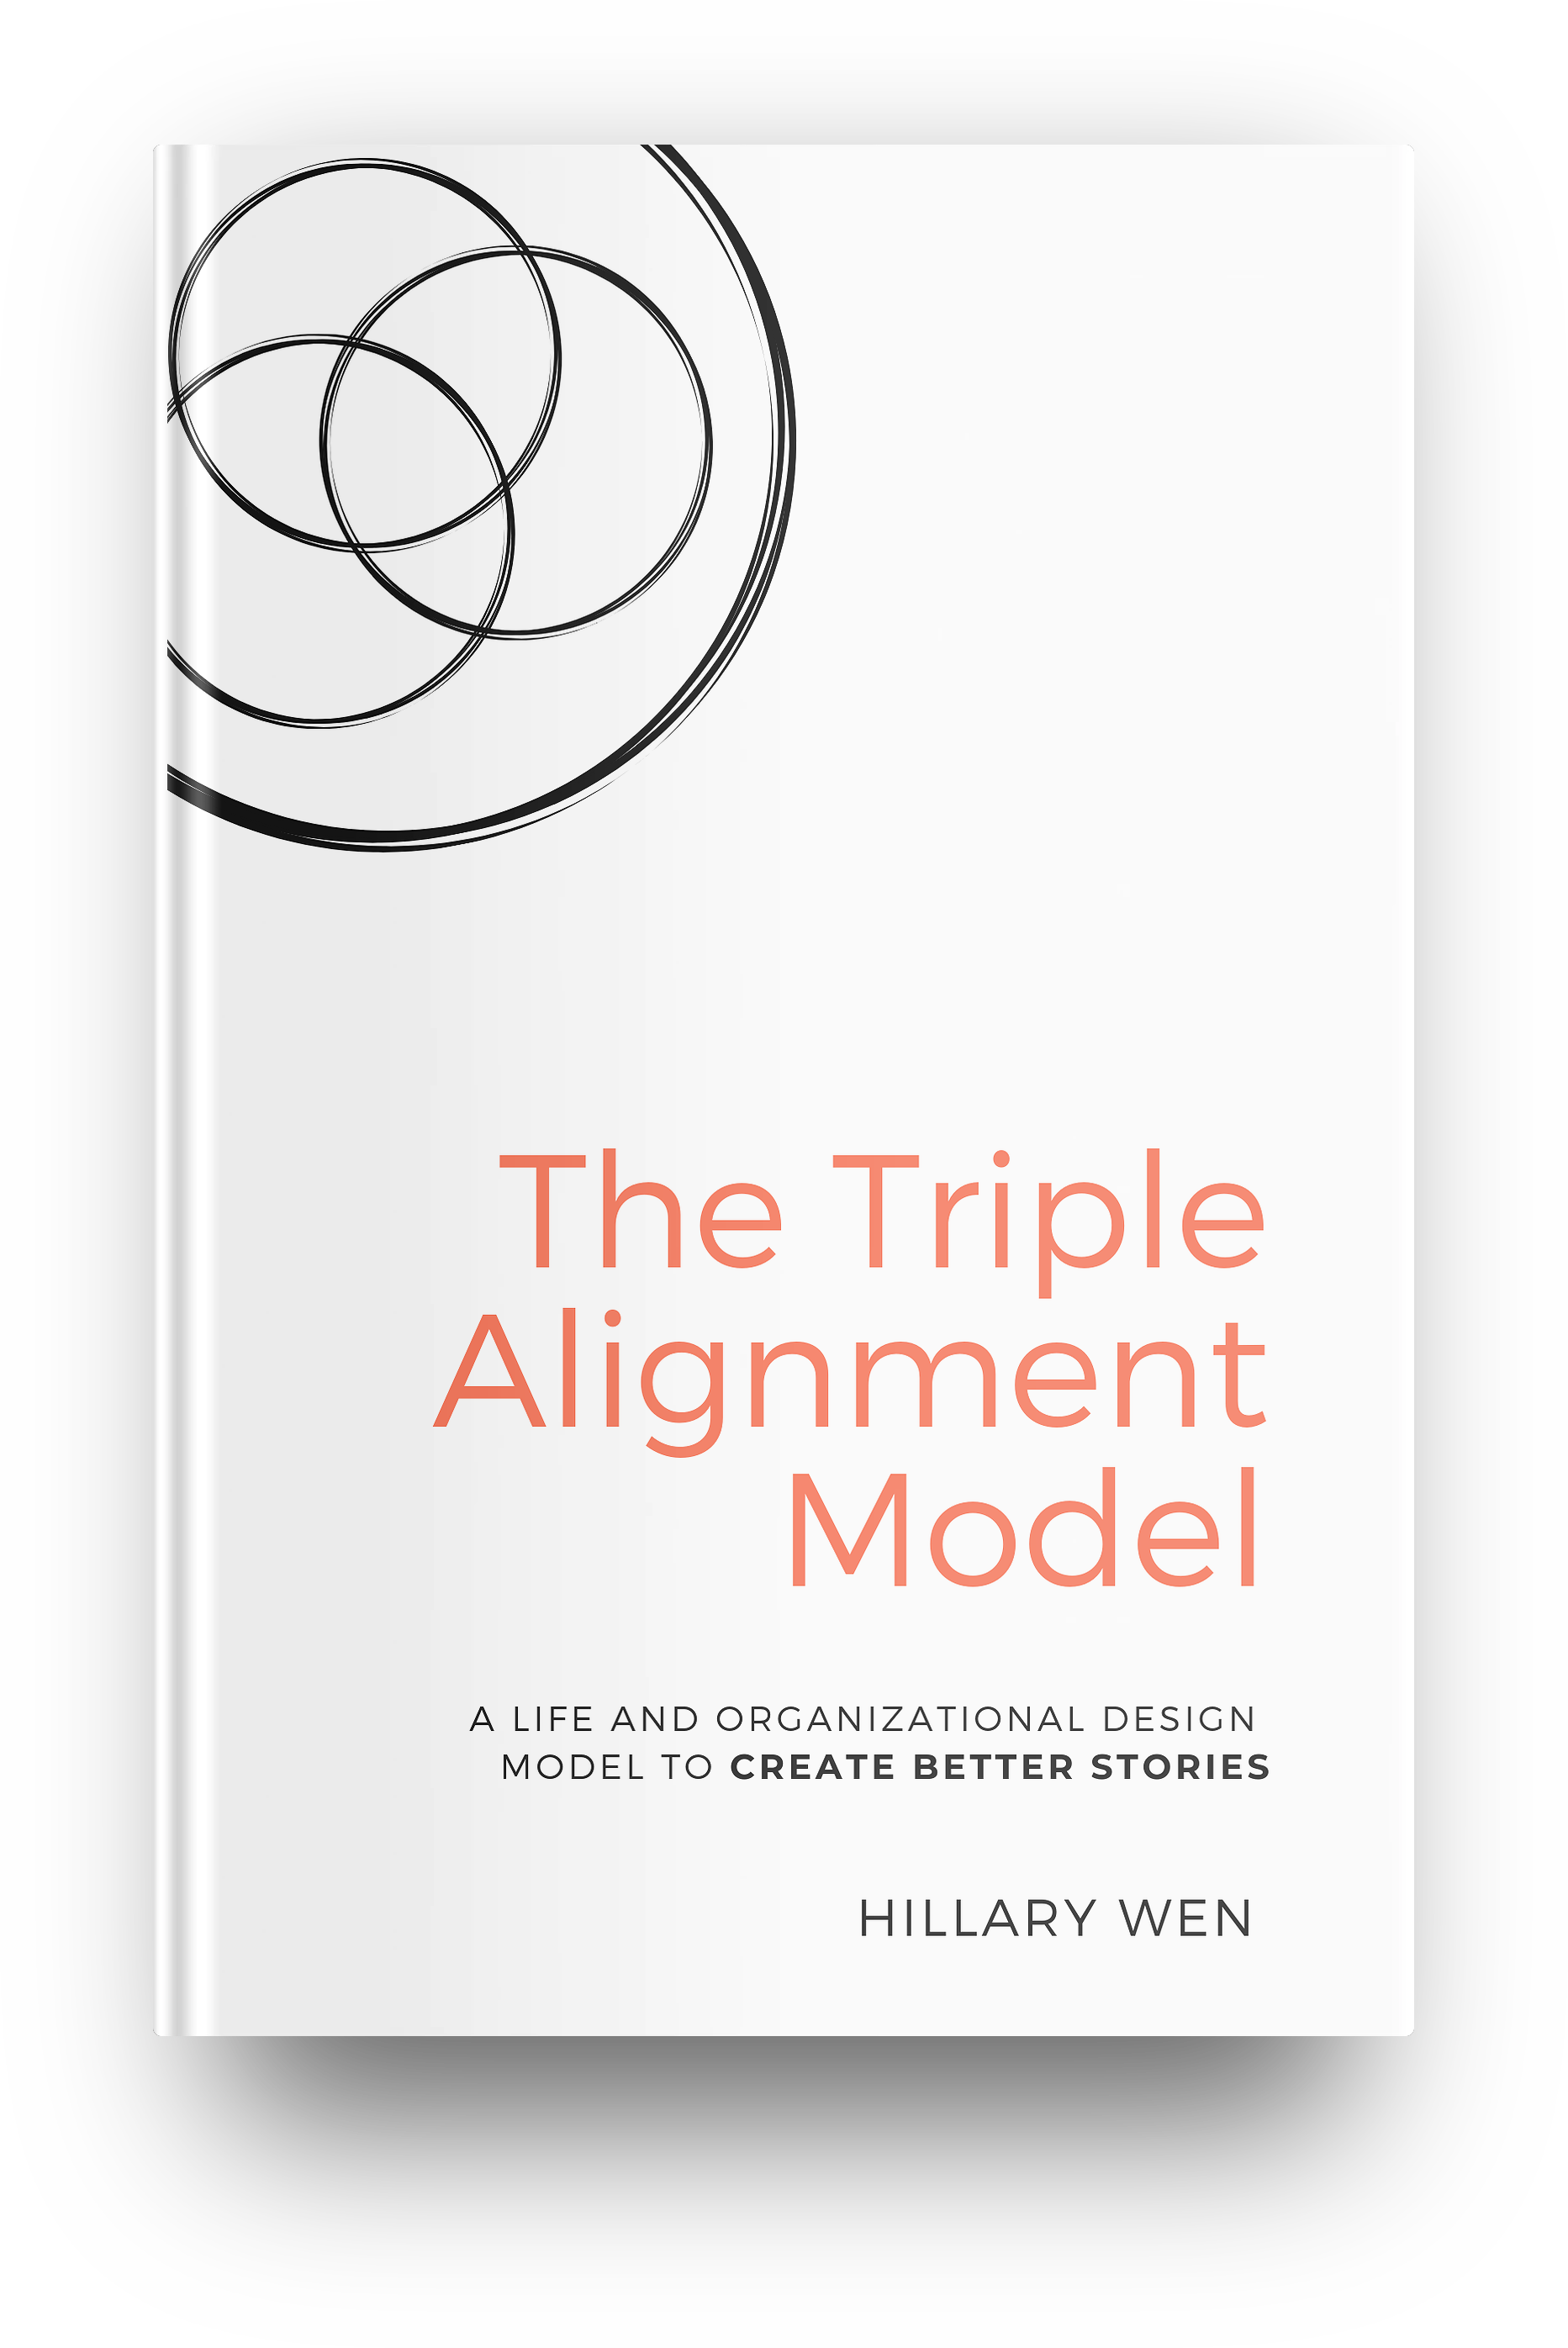 The Triple Alignment Model